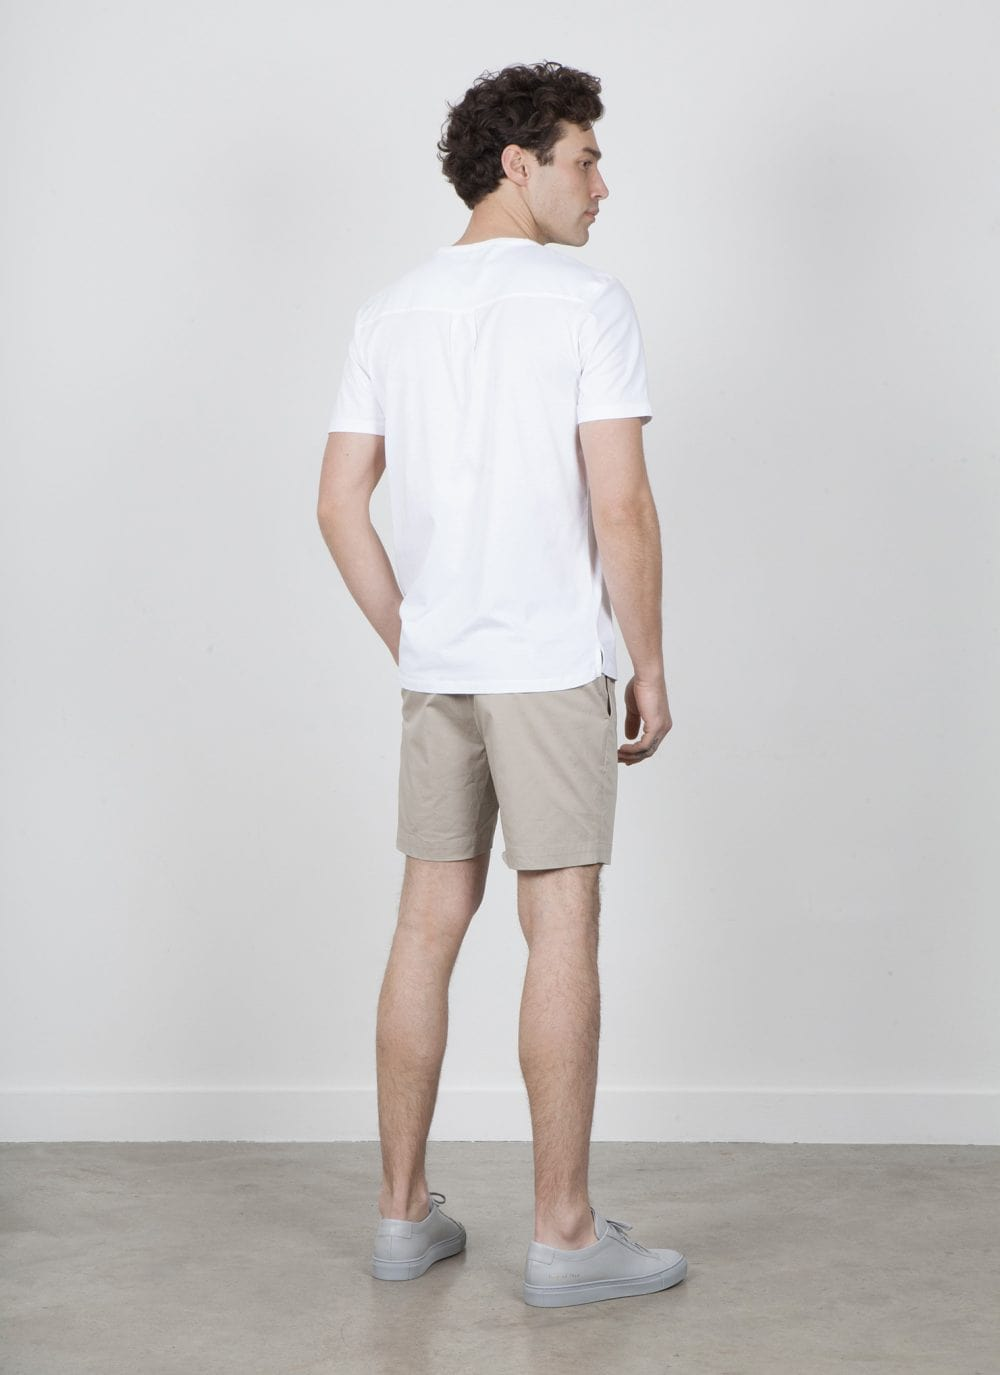 The 12 Shorts 7"